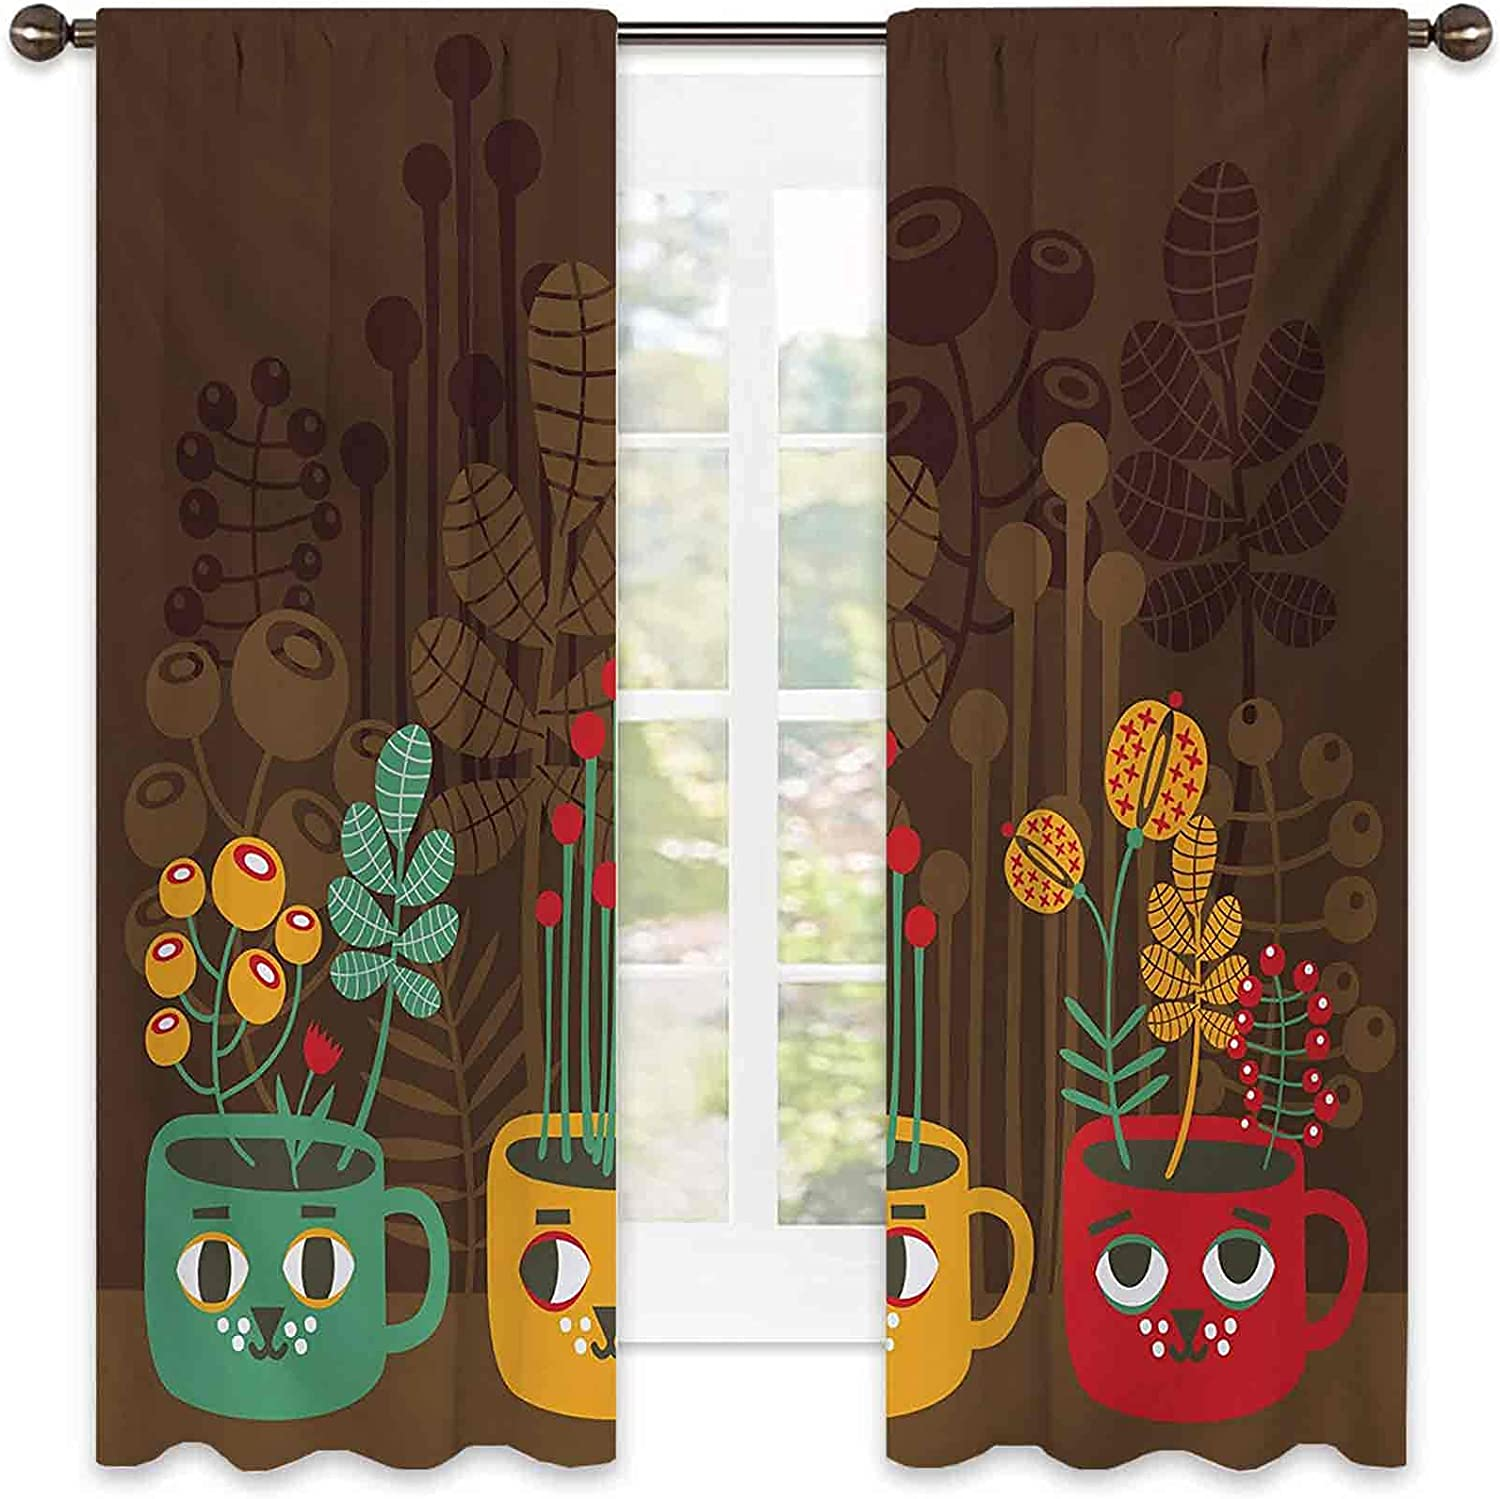 Modern Bedroom Rod Pocket Blackout High quality new Curtains Flowers Cute Plants Japan Maker New